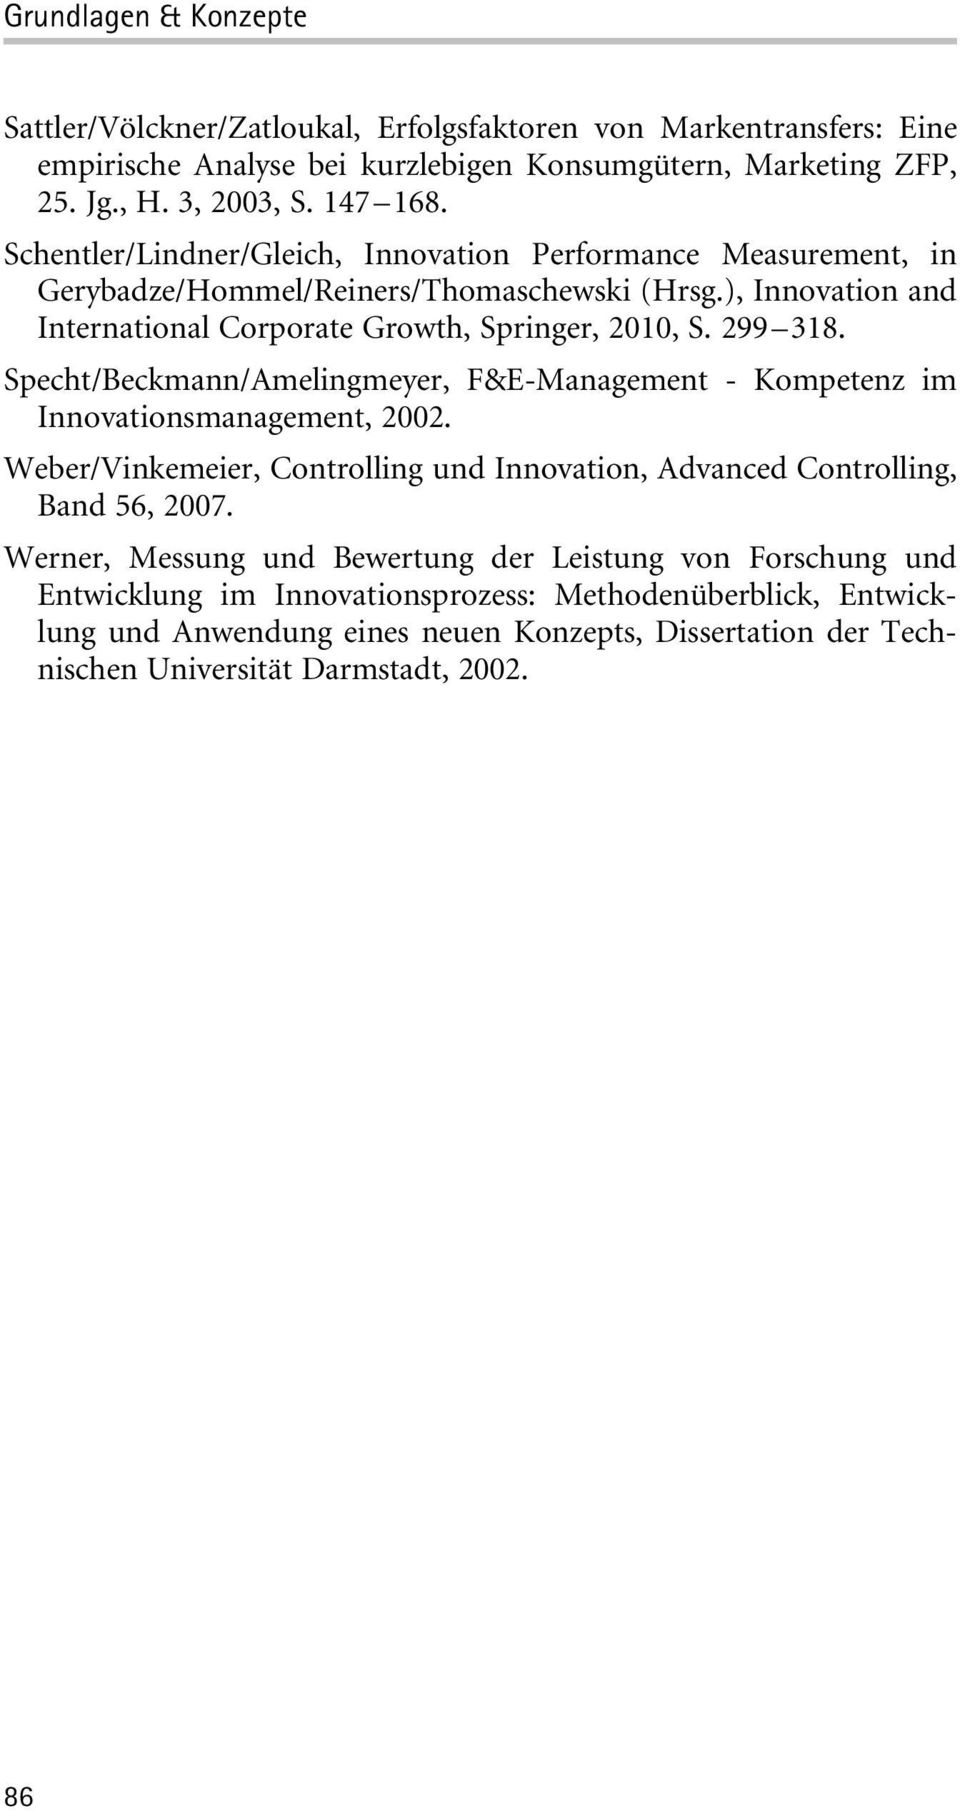 Specht/Beckmann/Amelingmeyer, F&E-Management - Kompetenz im Innovationsmanagement, 2002. Weber/Vinkemeier, Controlling und Innovation, Advanced Controlling, Band 56, 2007.